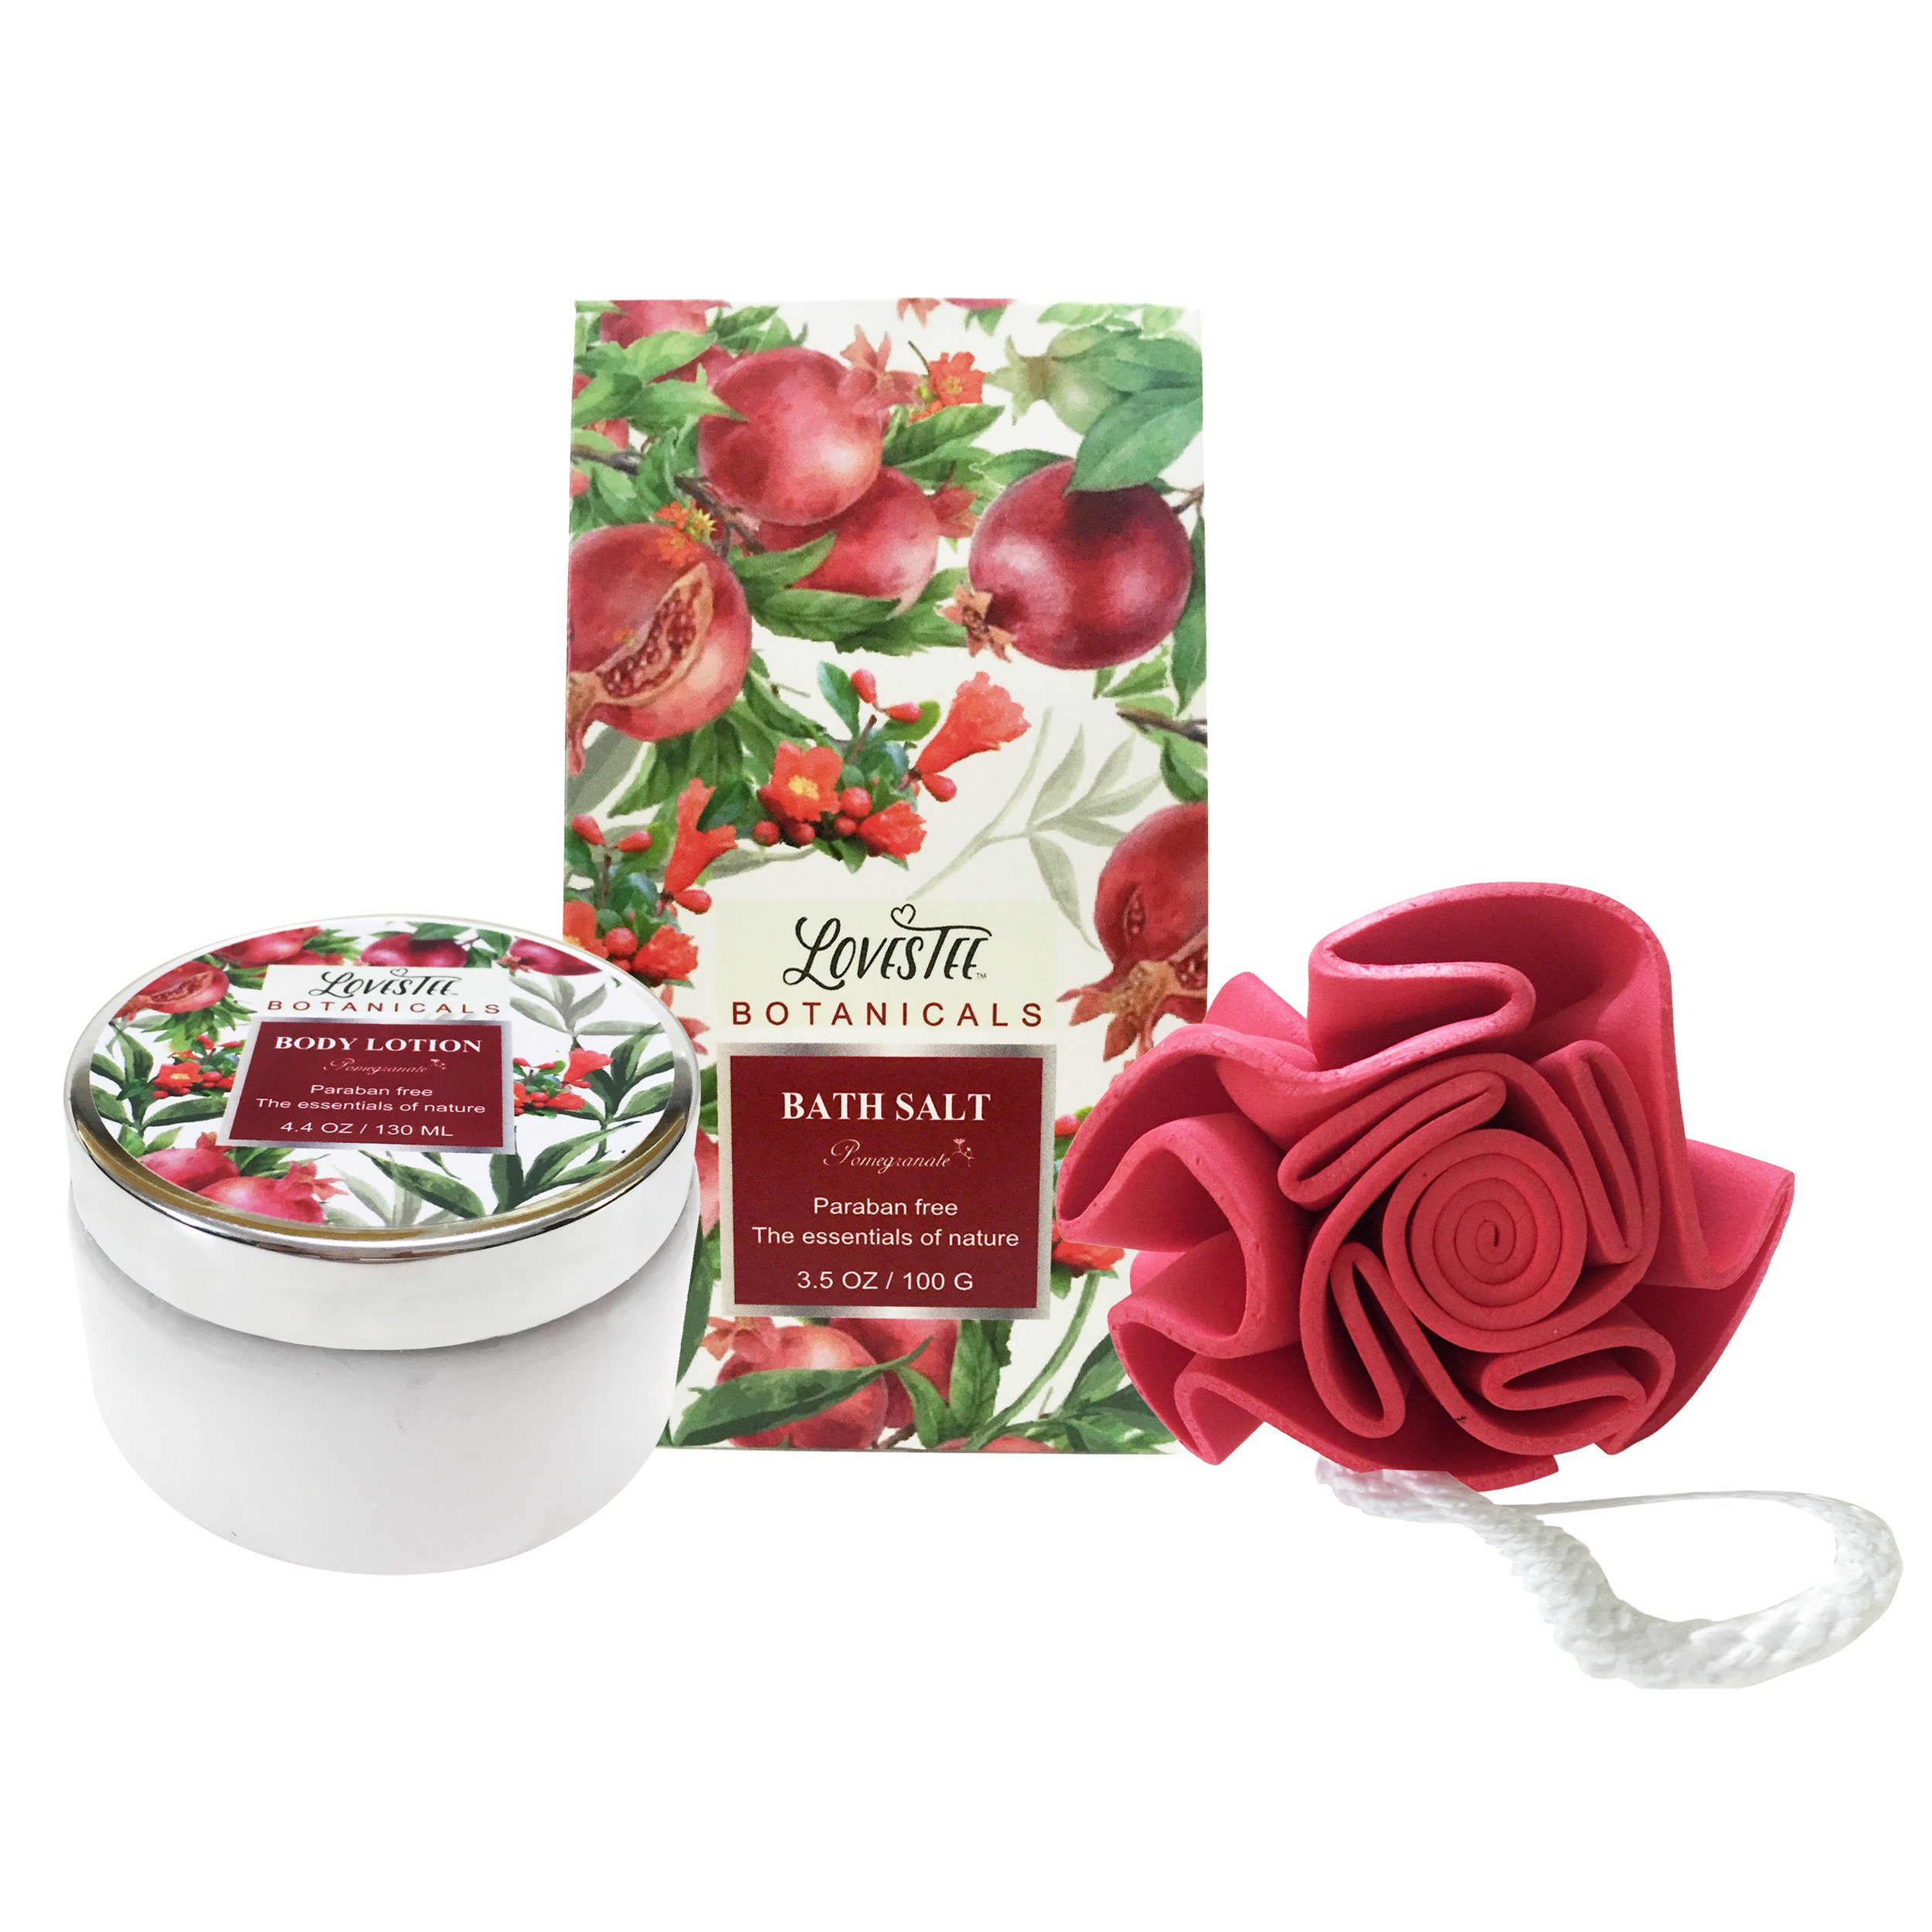 Women valentine gift red pomegrante love bath body spa relax basket the perfect holiday gift for your beloved ones who wouldnt benefit from a visit at the spa but how often do you really get to take the time to rejuvenate solutioingenieria Images